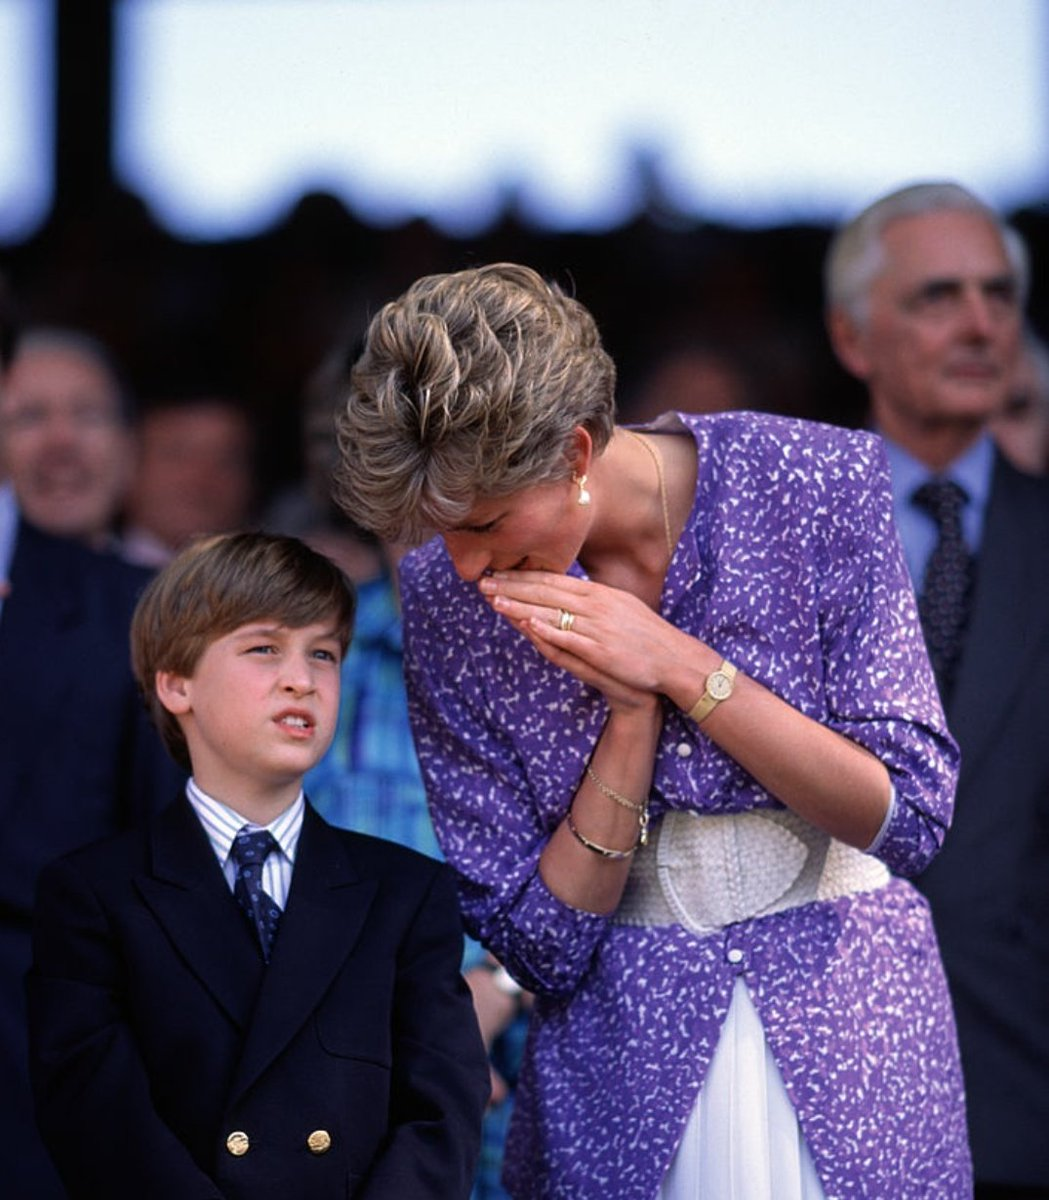 Princess Diana and Prince William at Wimbledon <br>http://pic.twitter.com/yEEpNwkyVb